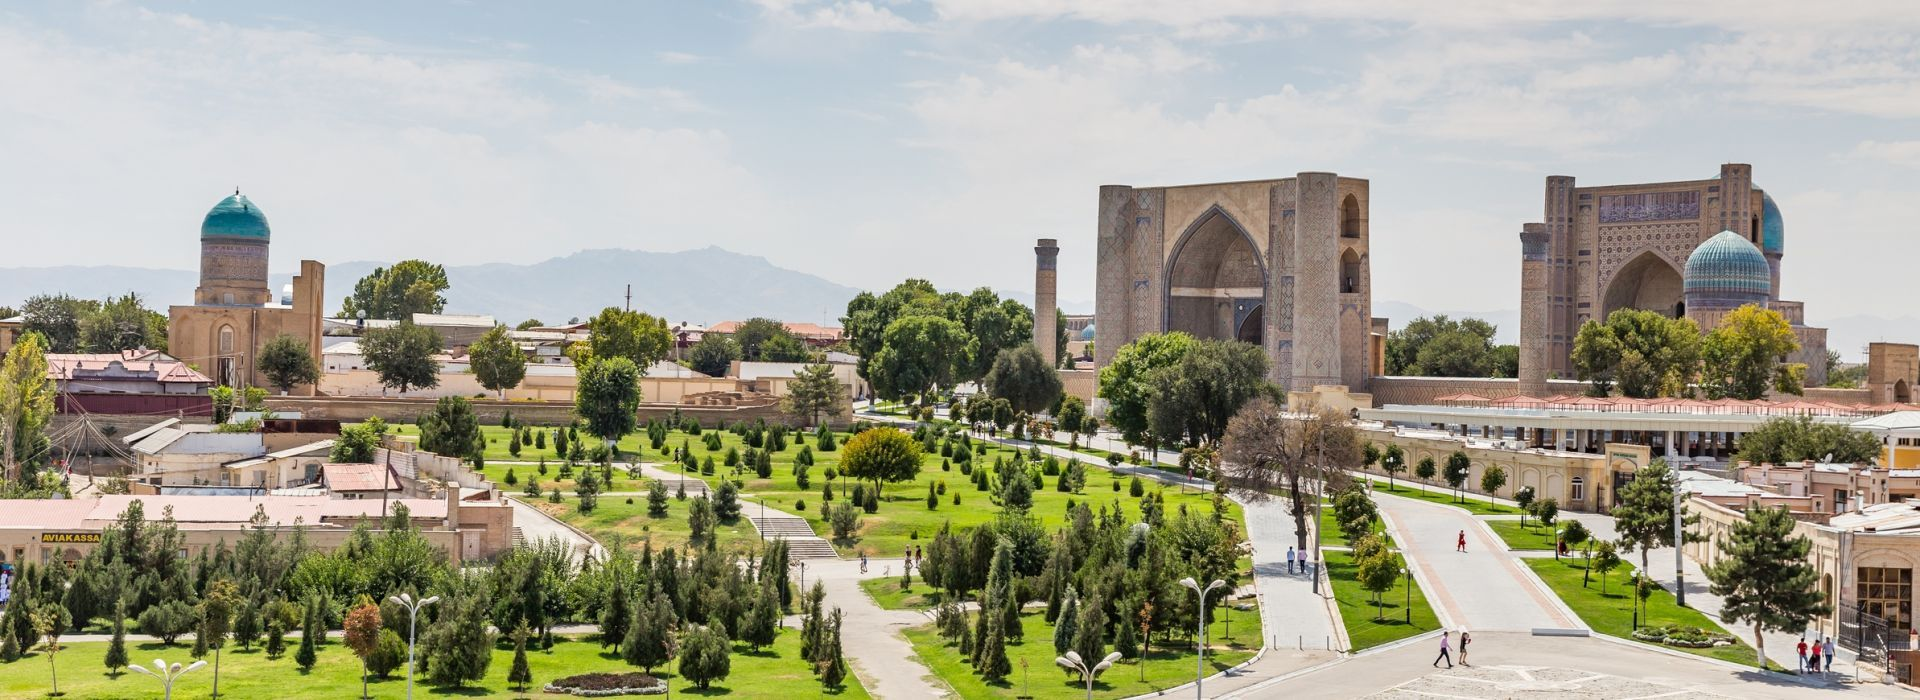 Walking tours in Tashkent